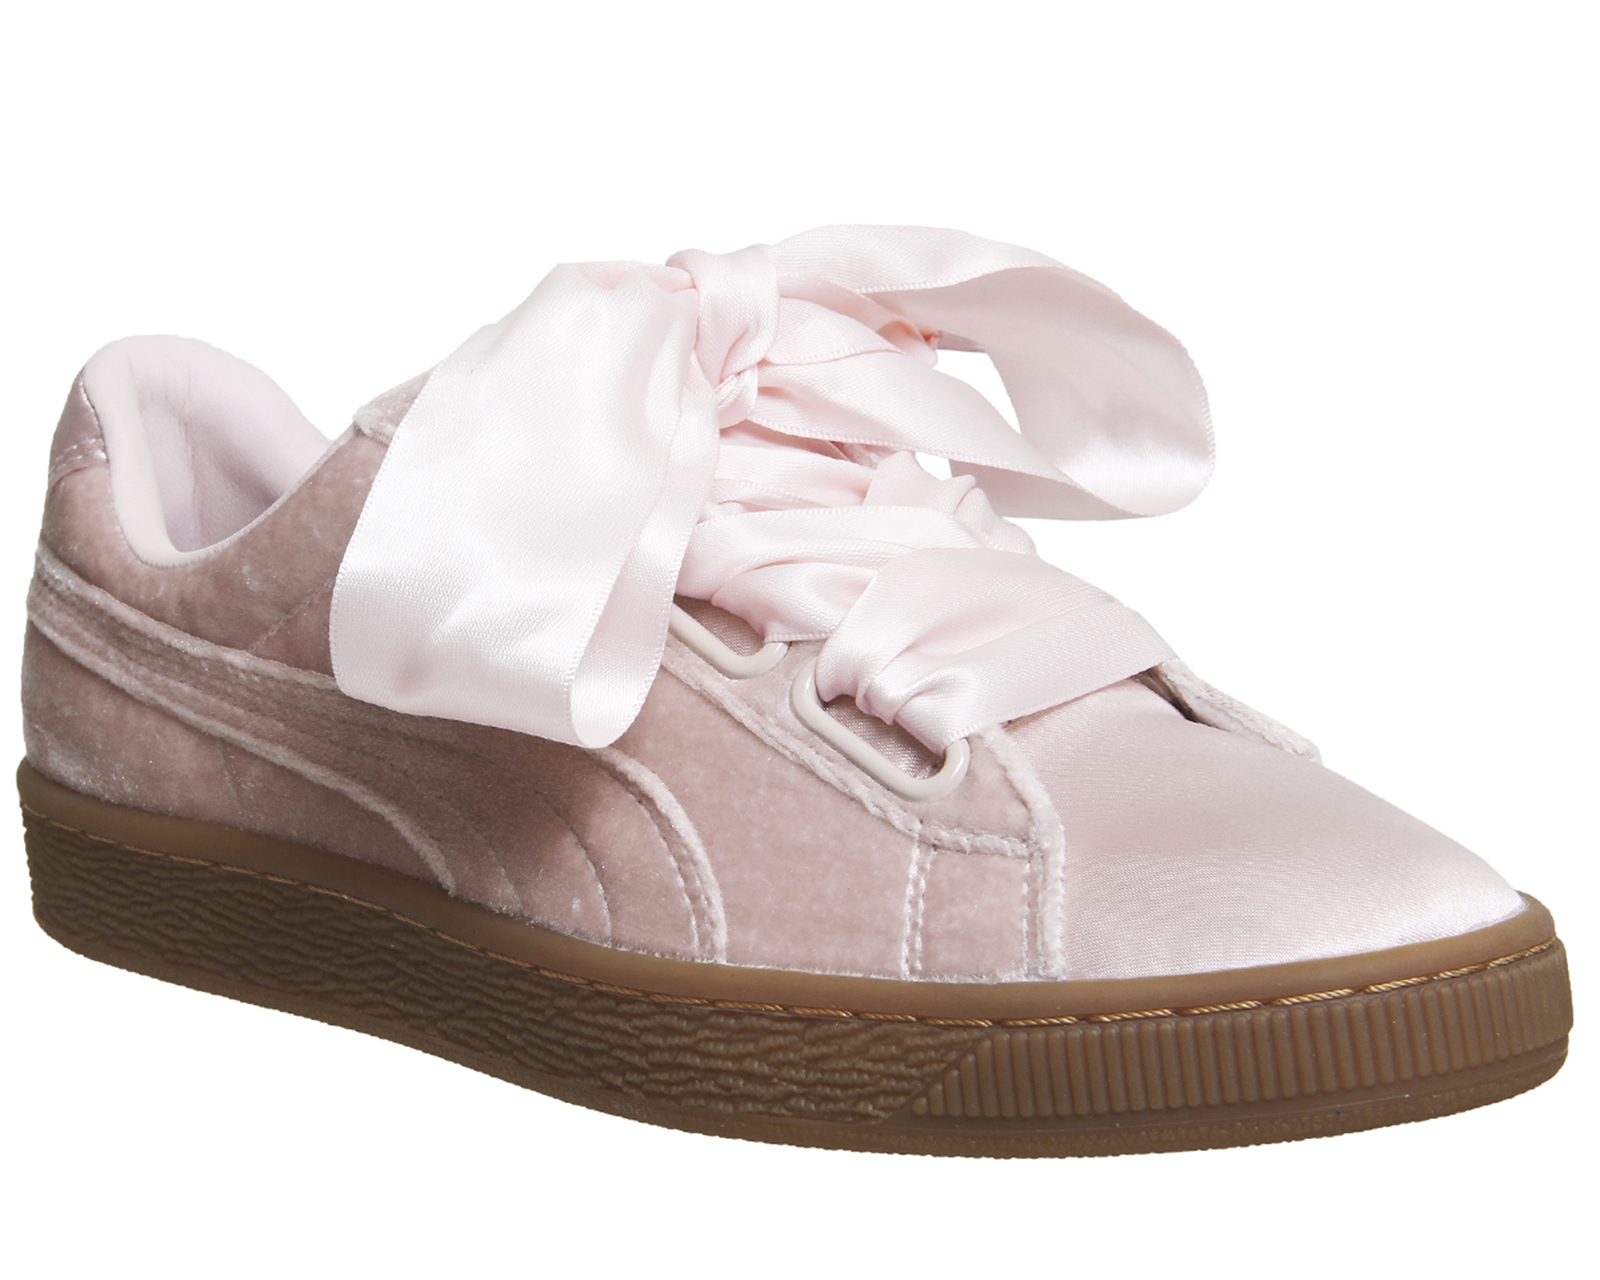 6d4e07c5c14b Sentinel Womens Puma Basket Heart Trainers Silver Pink Gum Trainers Shoes